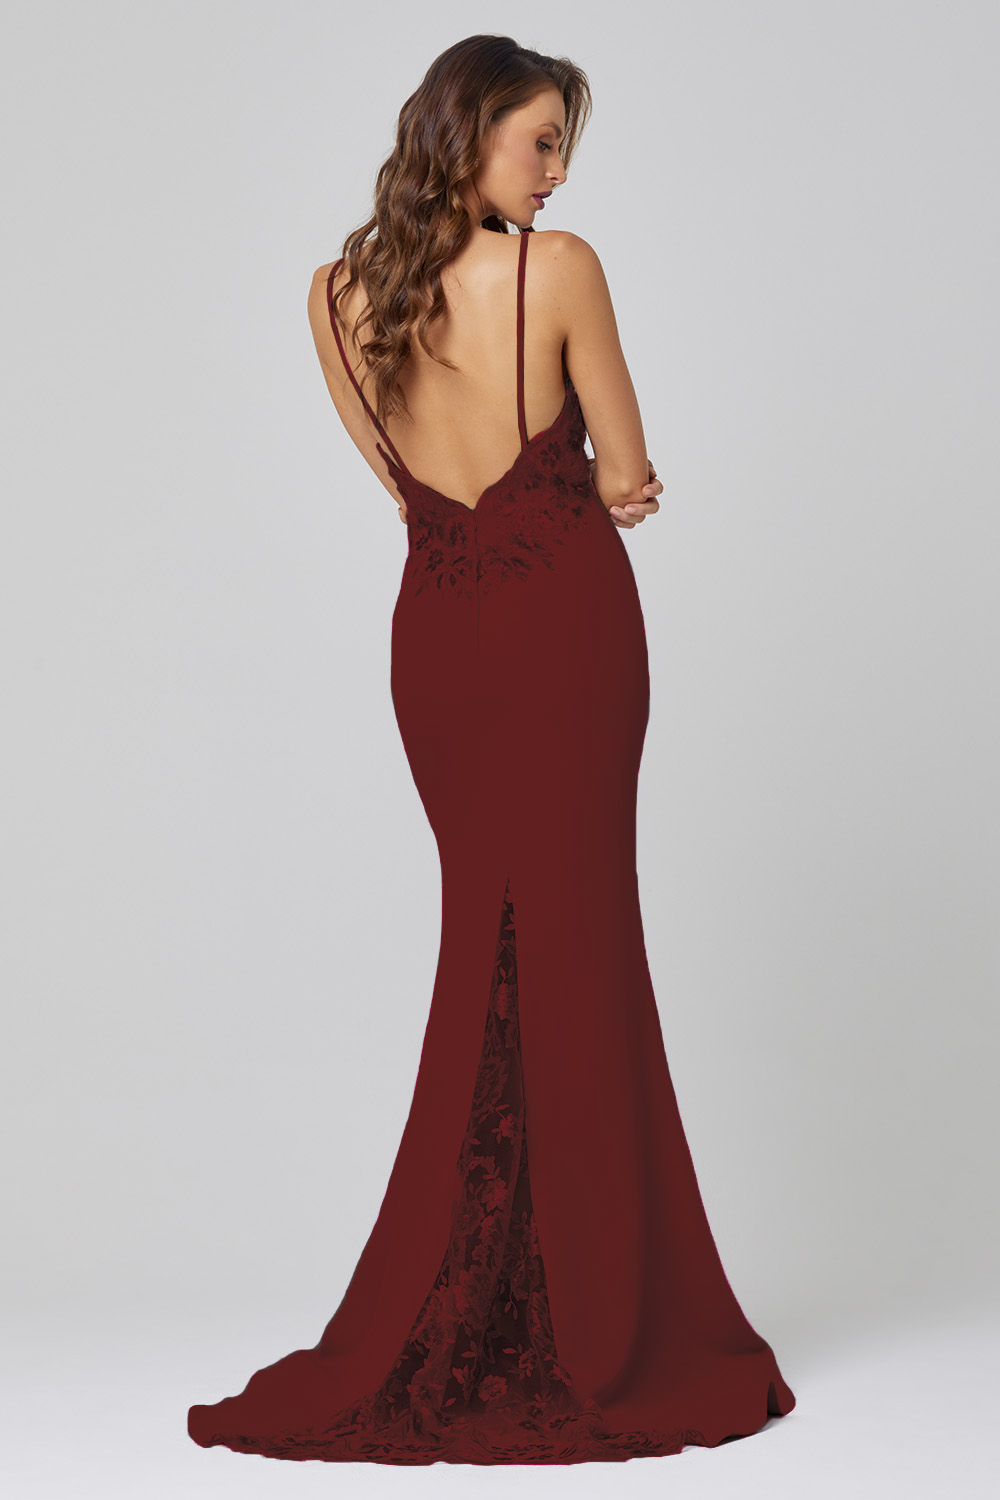 Pippa Low Back Sequin Lace Formal Dress - PO888 wine